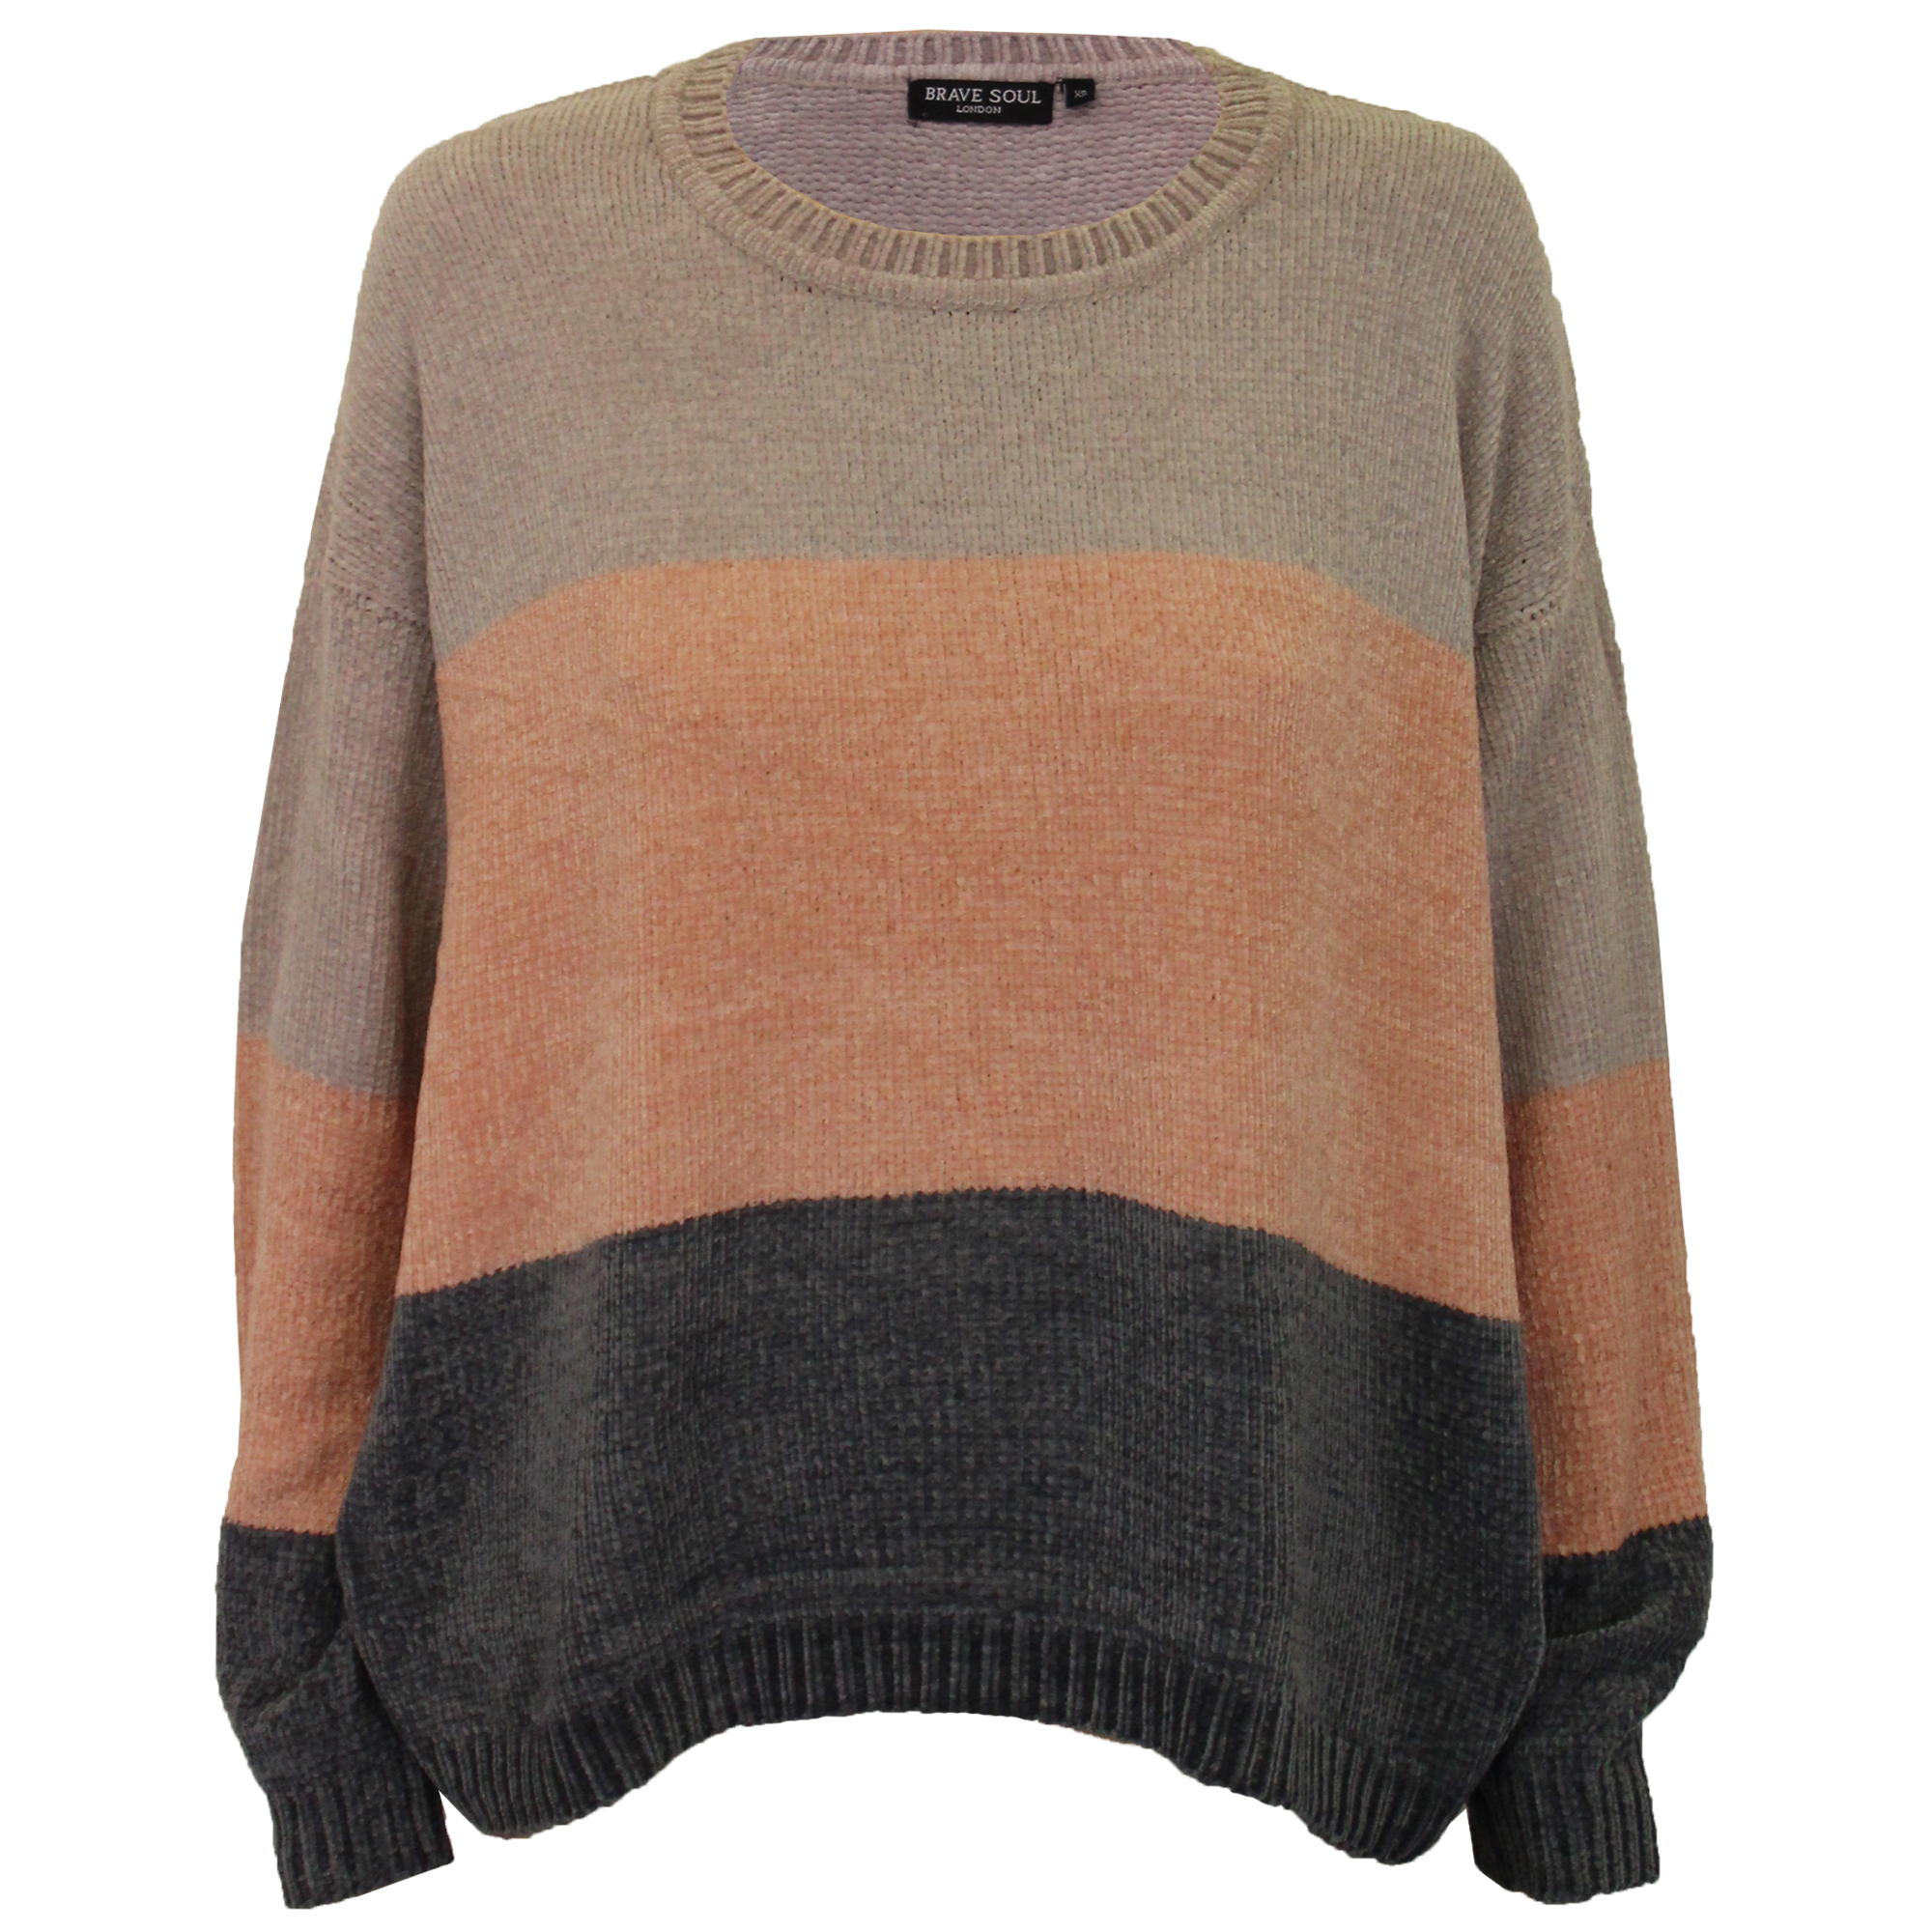 ca3cfb548375 Details about Ladies Chenille Block Jumper Brave Soul Womens Knitted PANDA  Crew Neck Winter